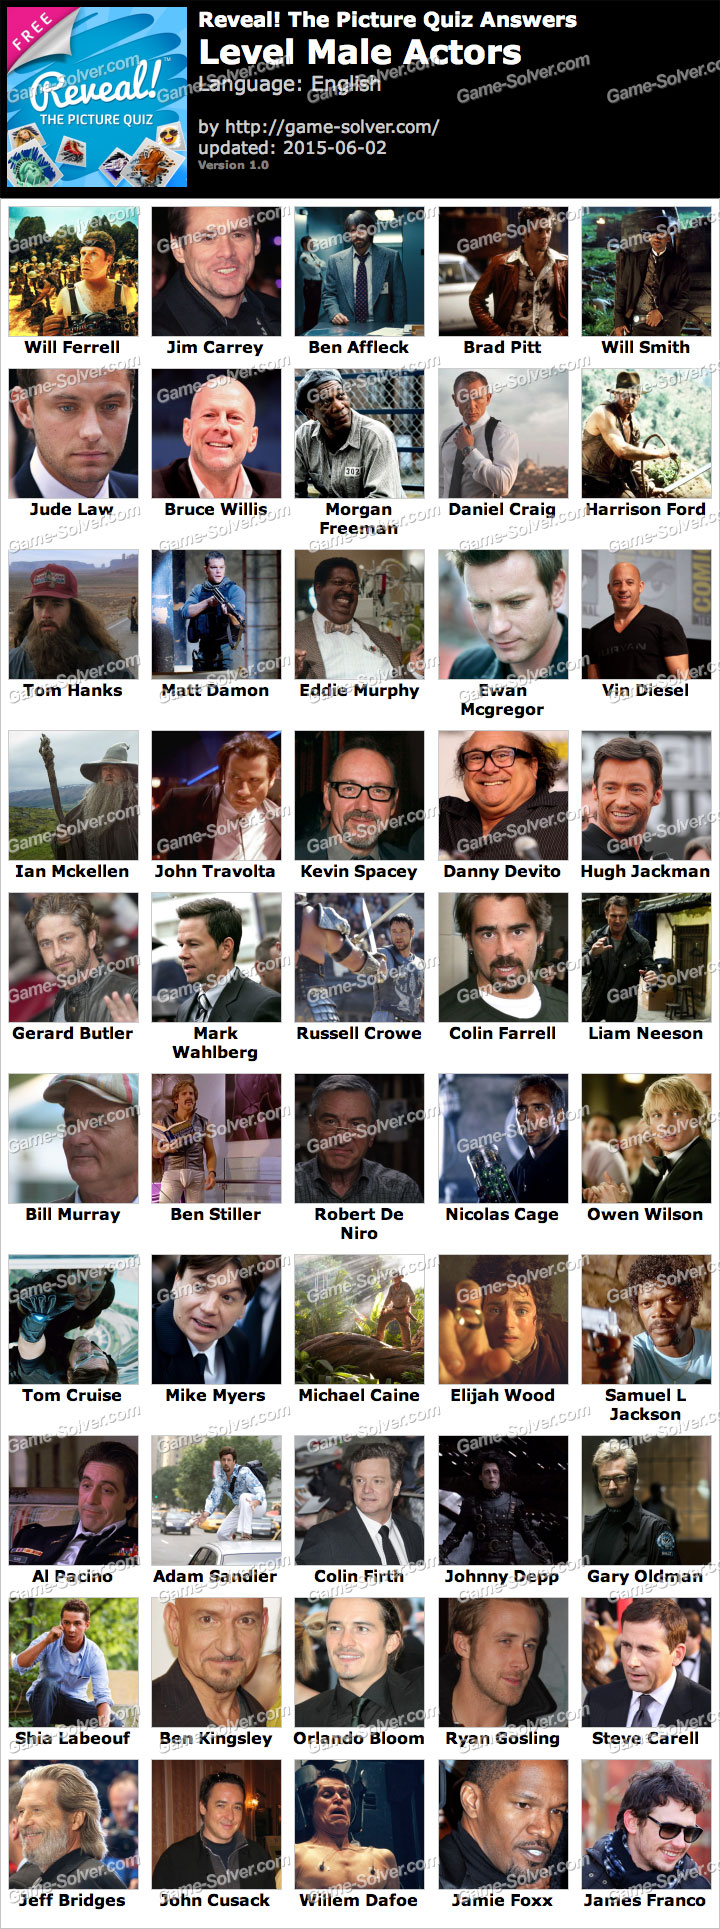 Pics Answers Movie Stars Level